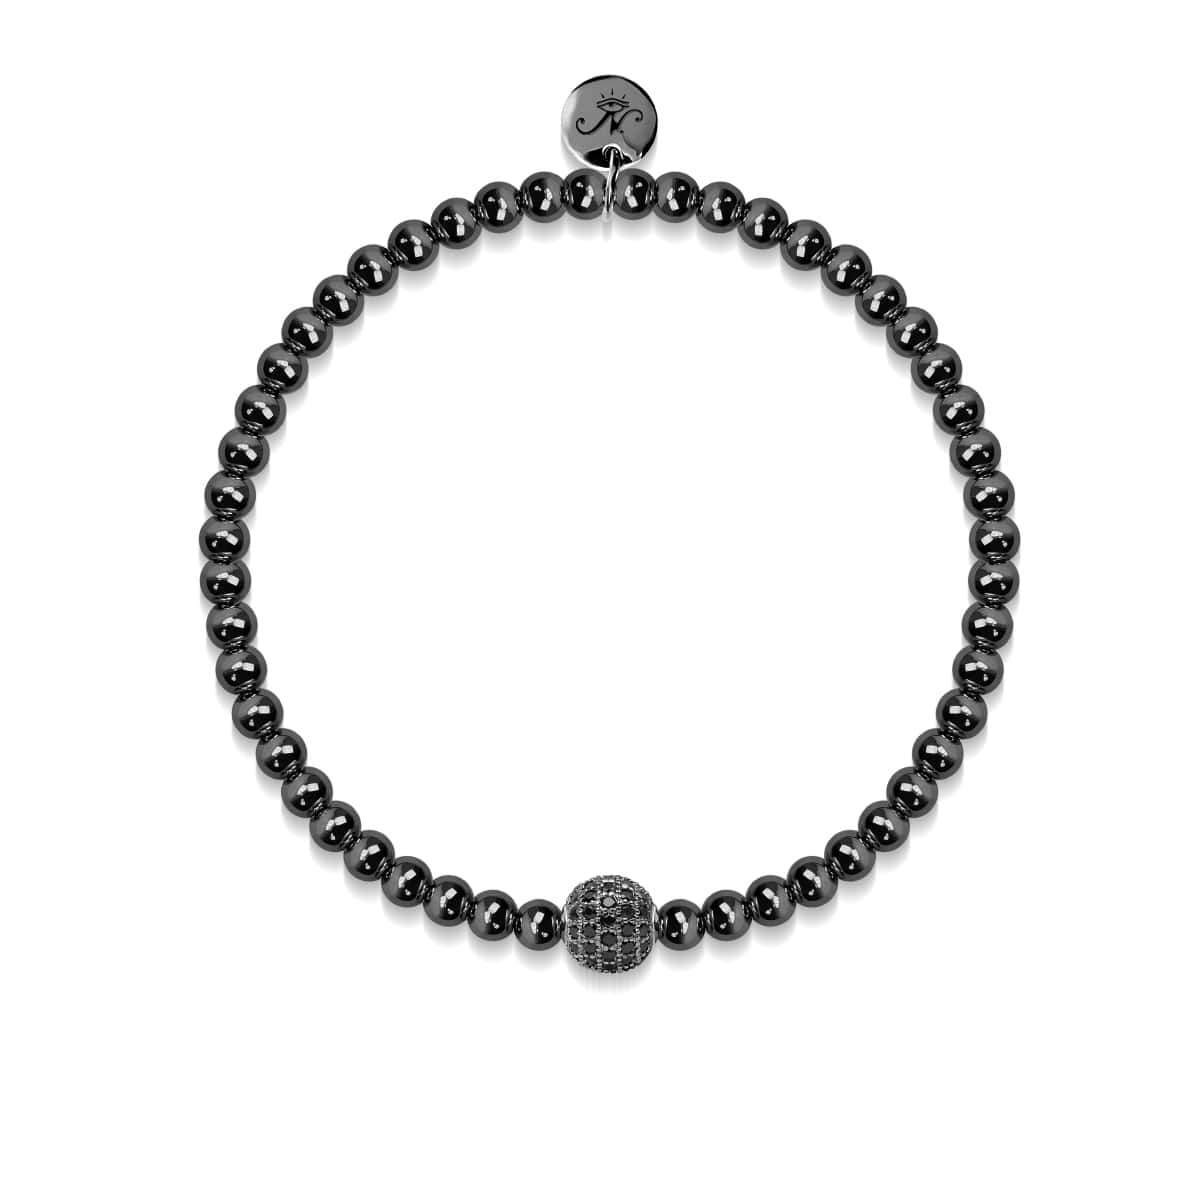 Glamorous | Gunmetal | Black Cubic Zirconia Crystals | Men's Expression Bracelet | Engravable